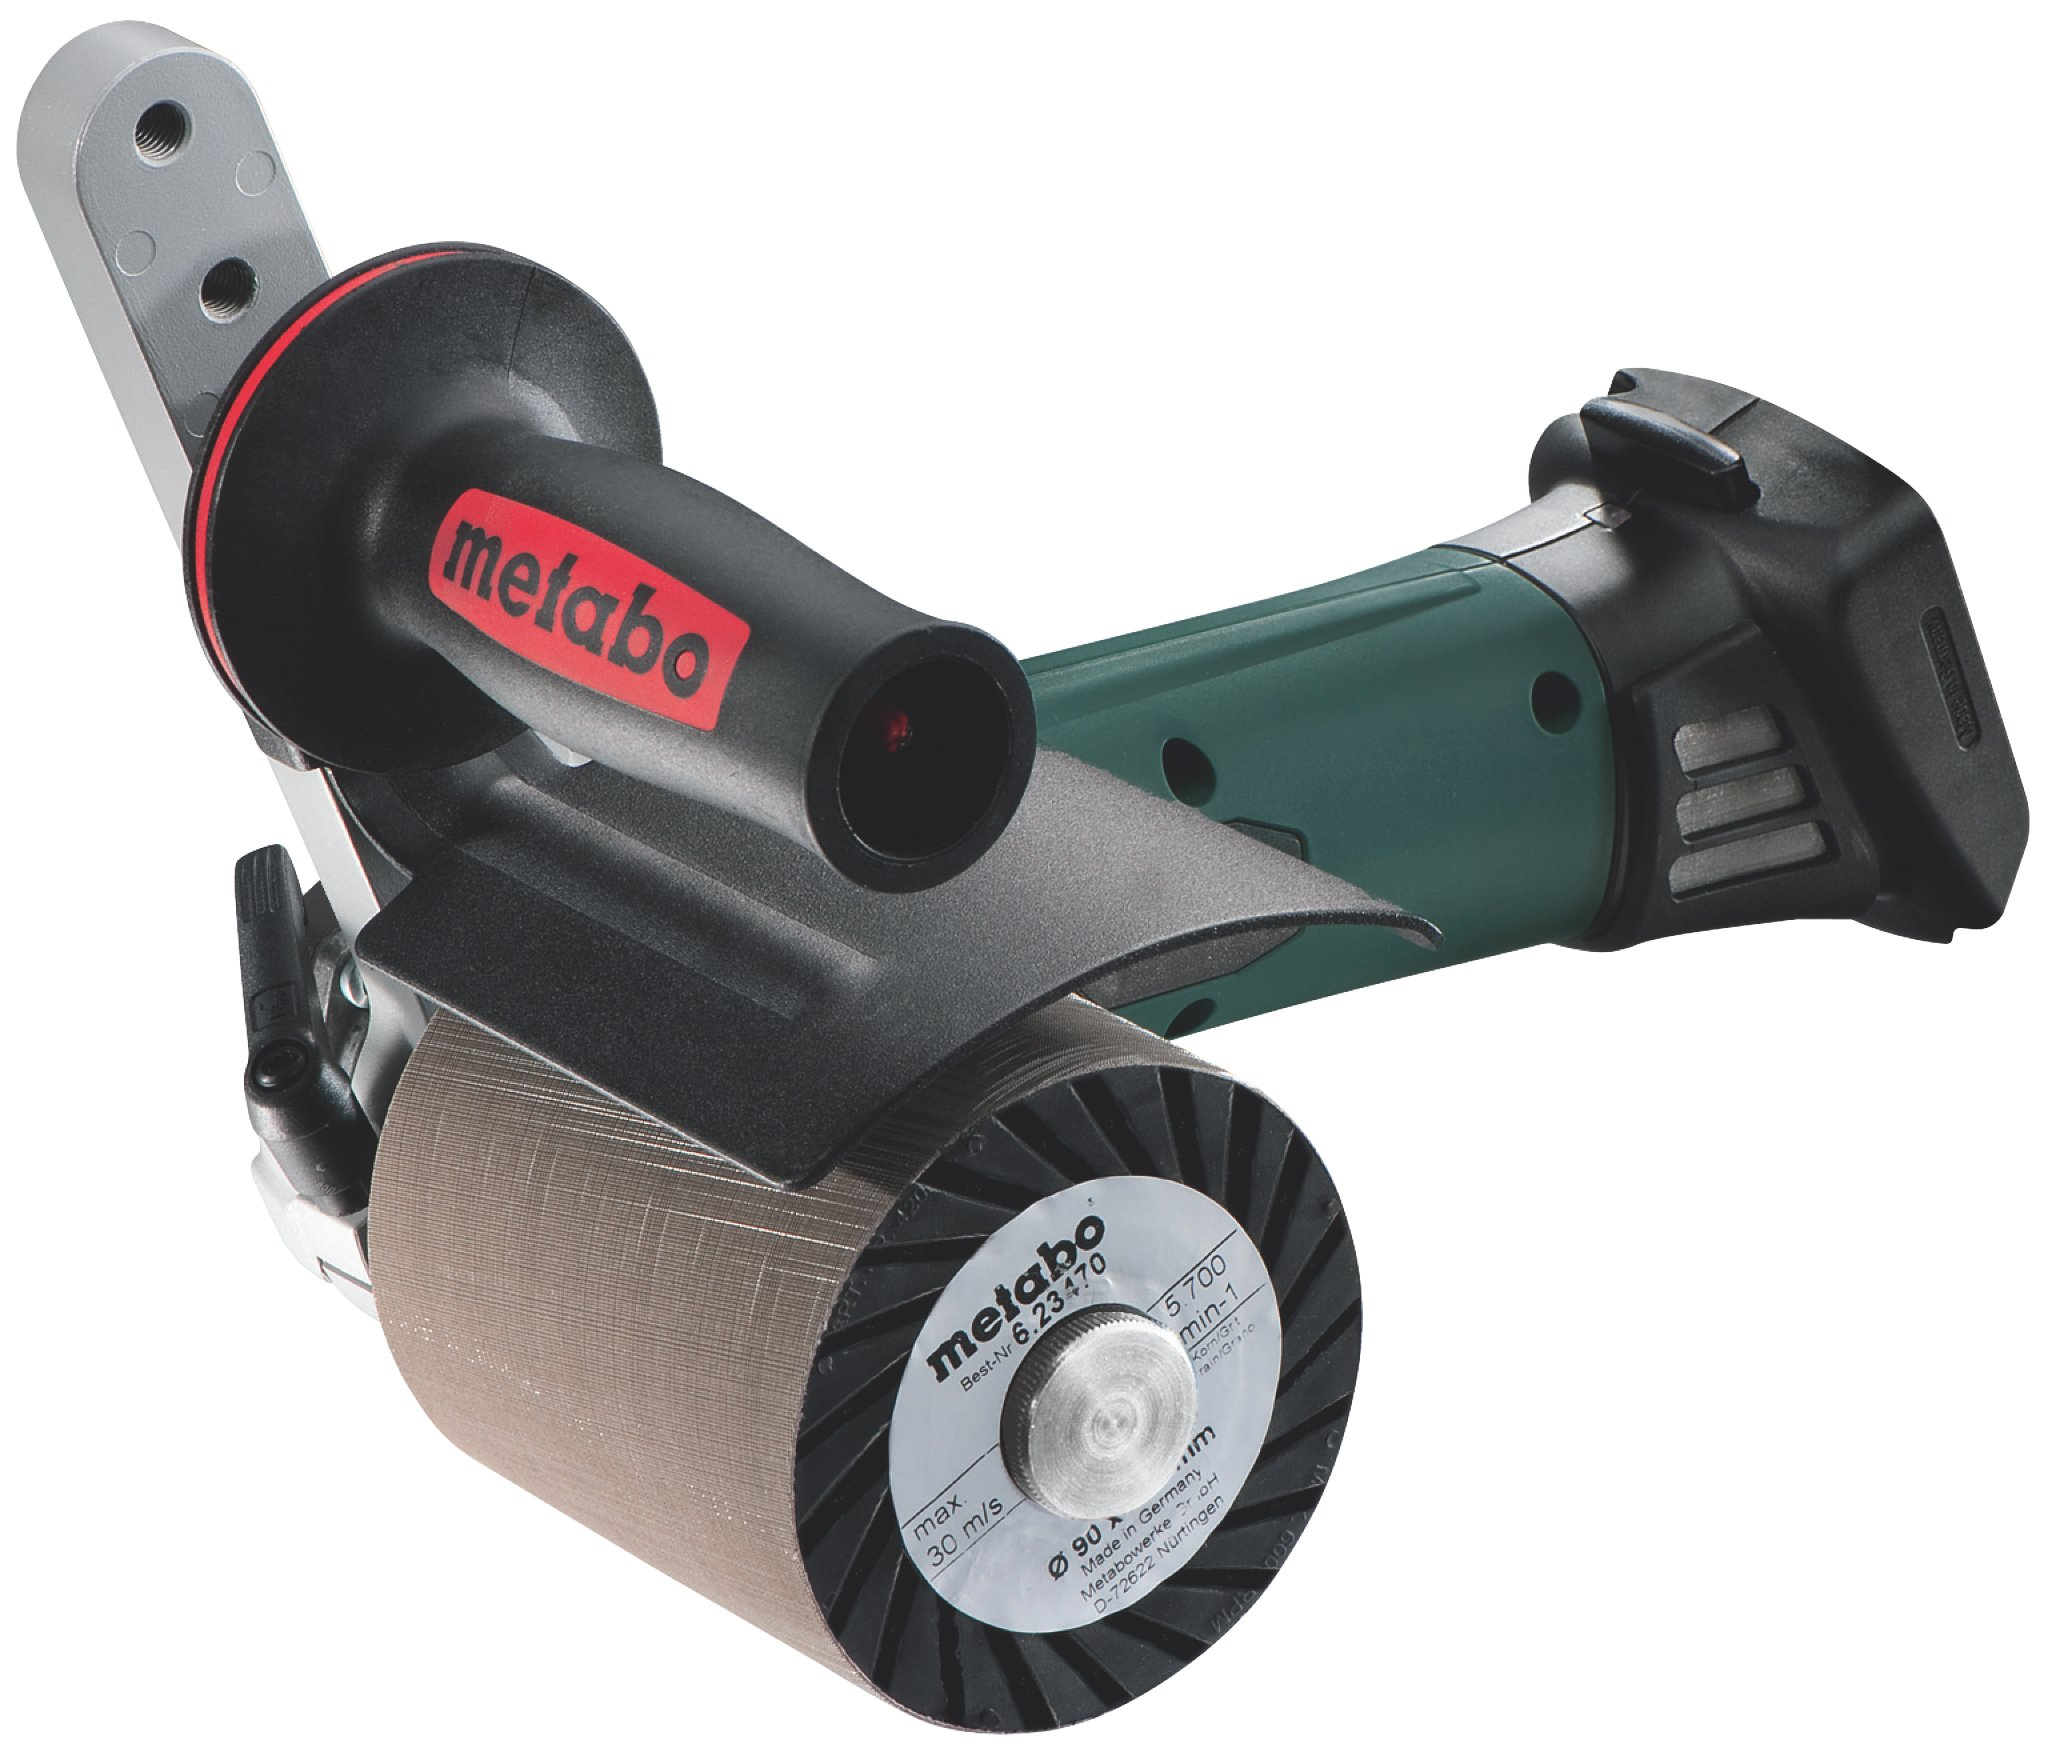 Metabo 600154860 18V 5.2 Ah Cordless Lithium-Ion 3,000 RPM Burnisher (Bare Tool)